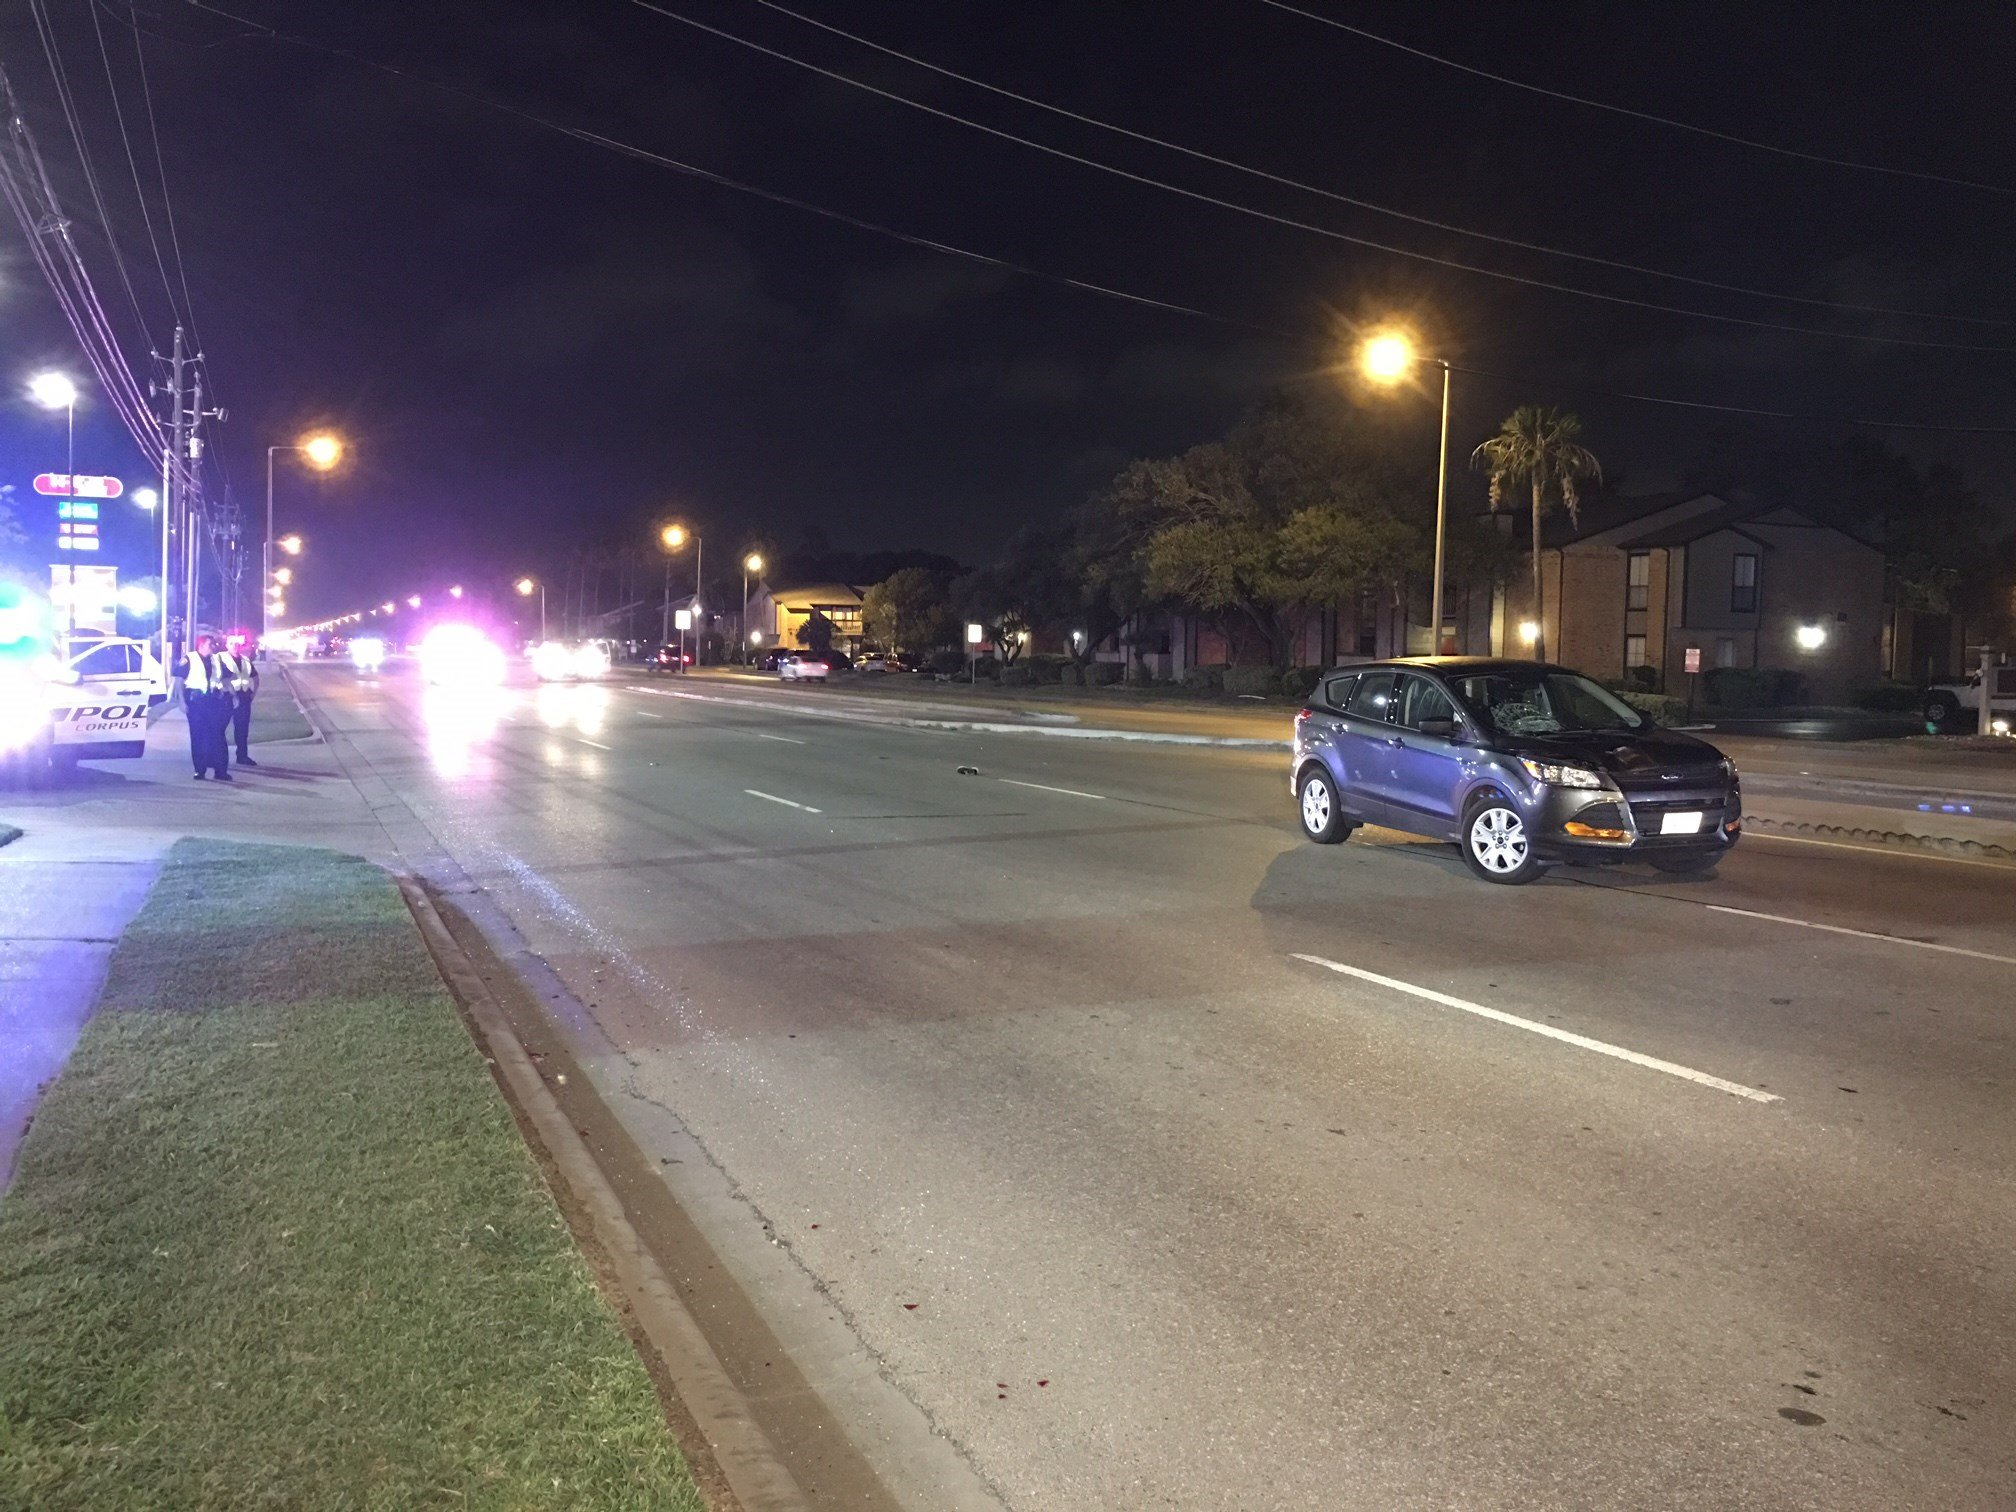 The accident reportedly occurred near the intersection of Staples and Saratoga.